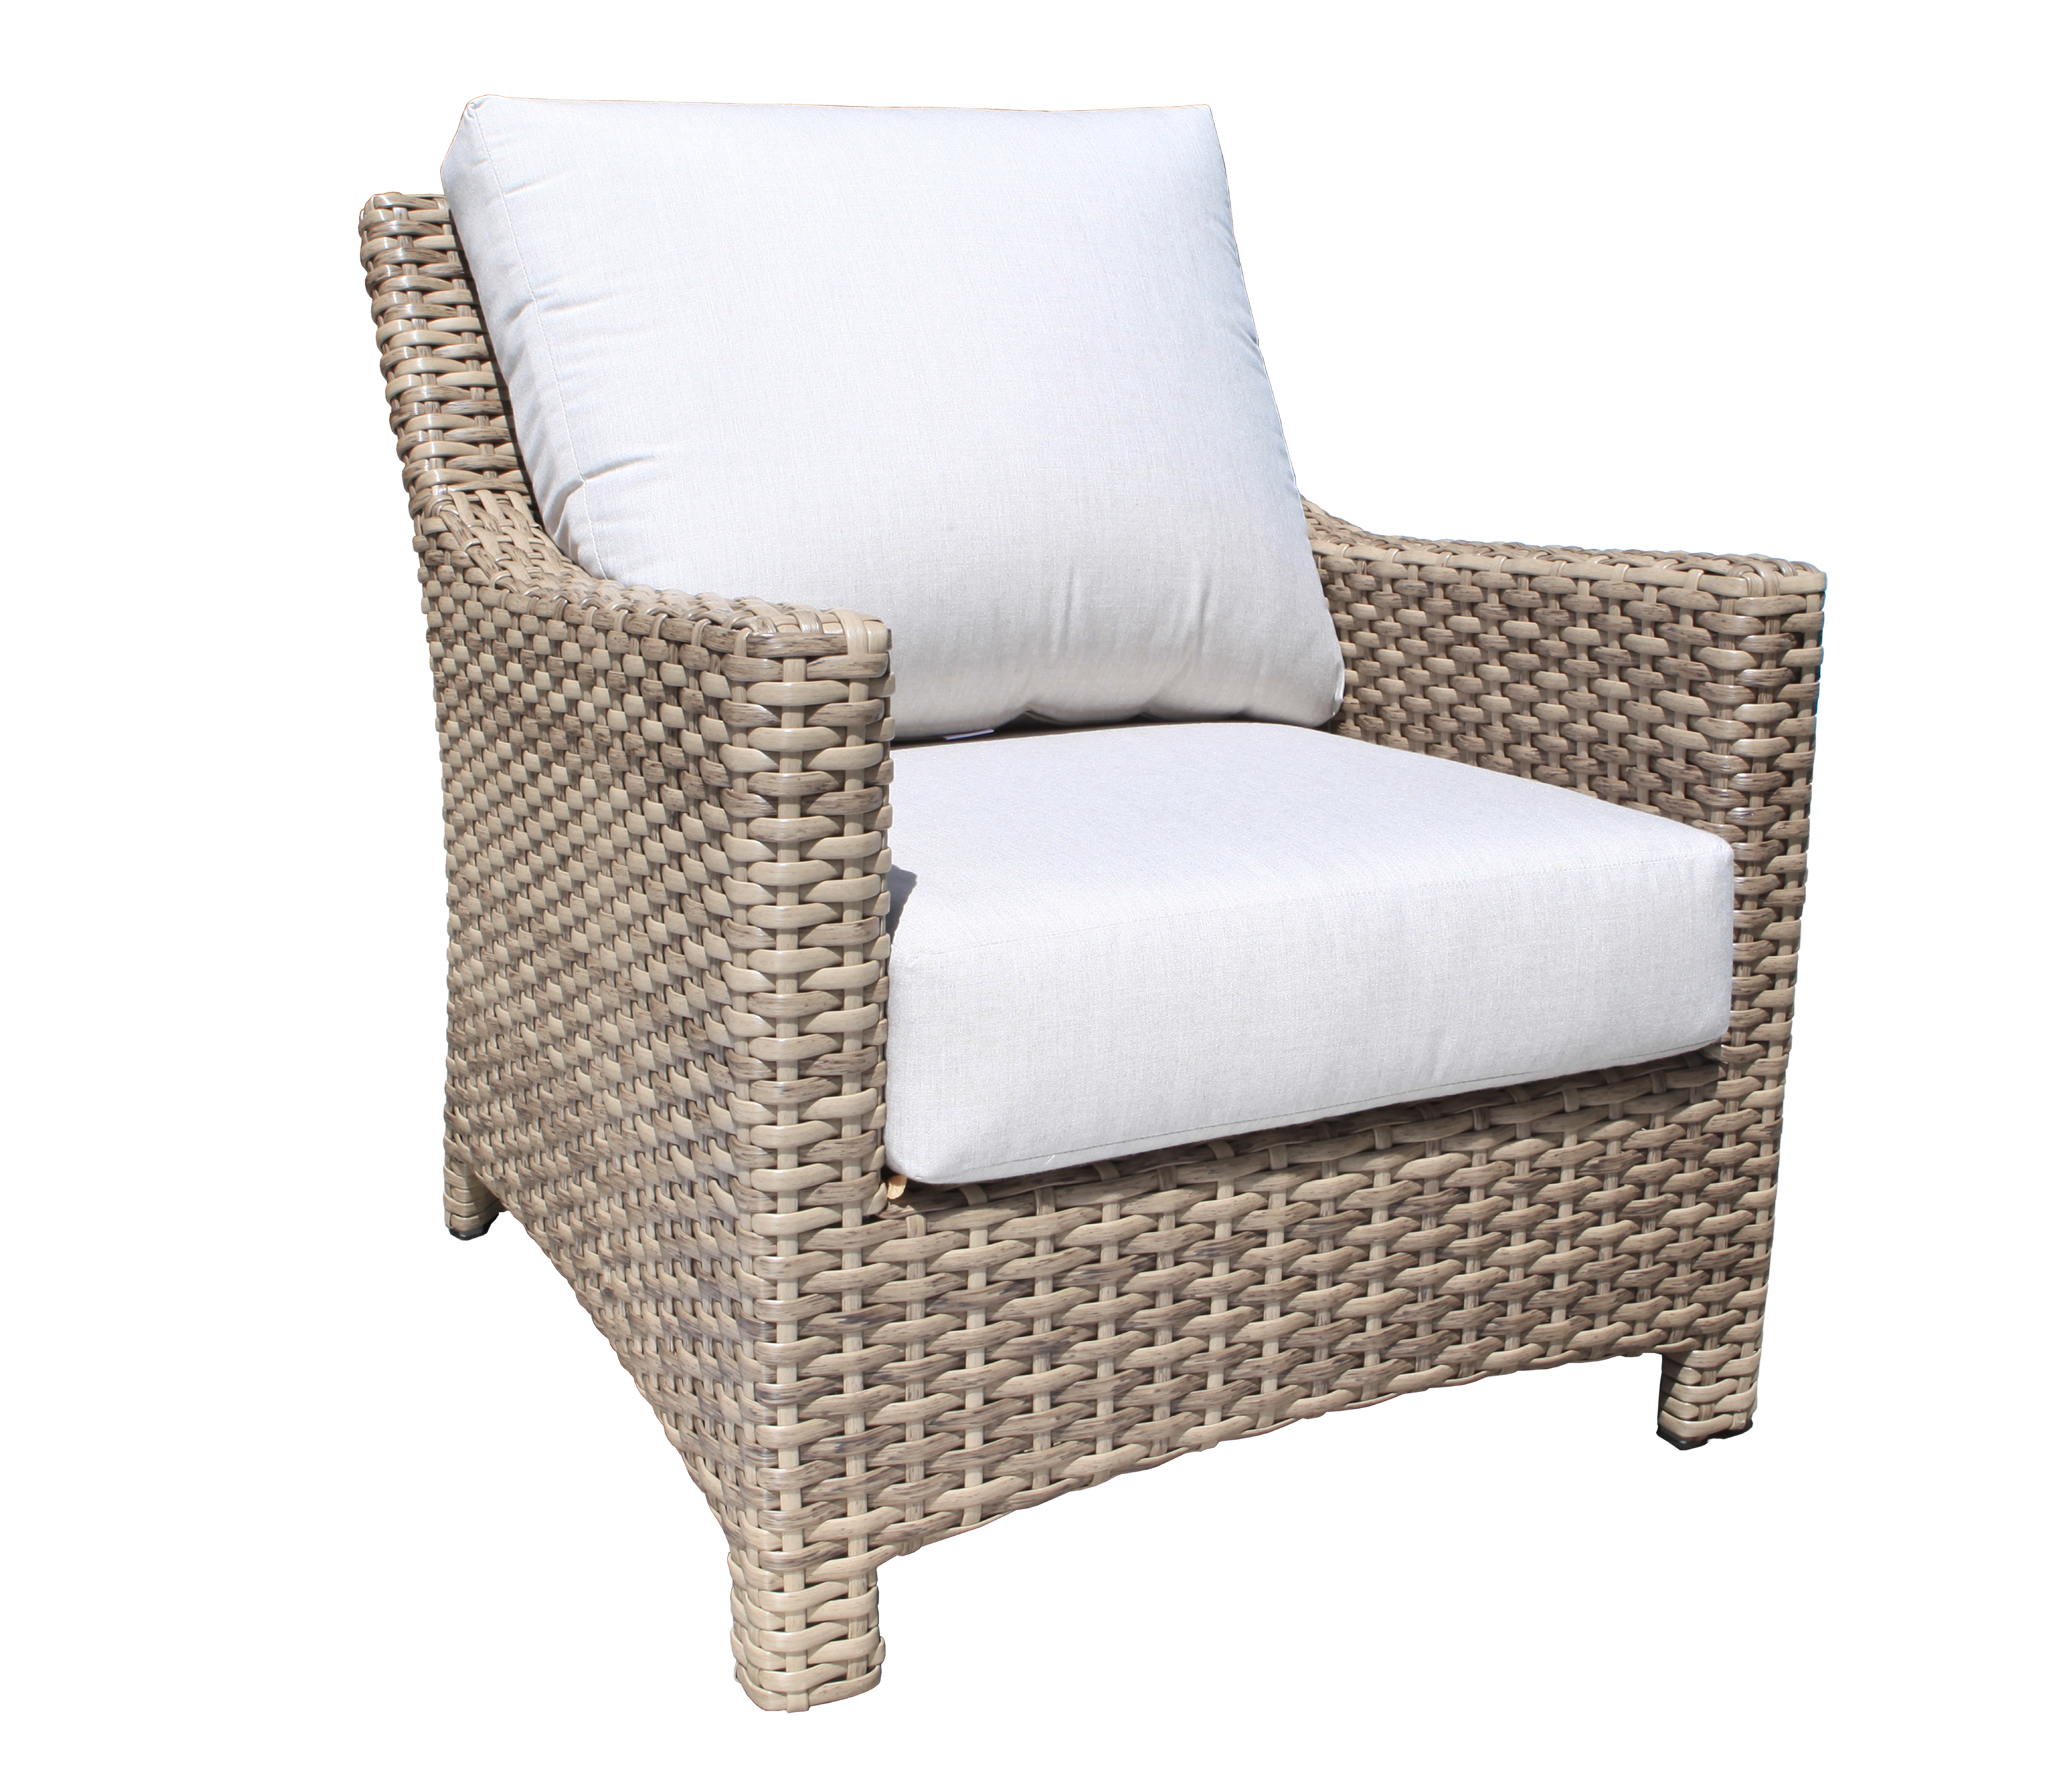 Riverside Lounge Chair - Southport Outdoor Living on Riverside Outdoor Living id=83574